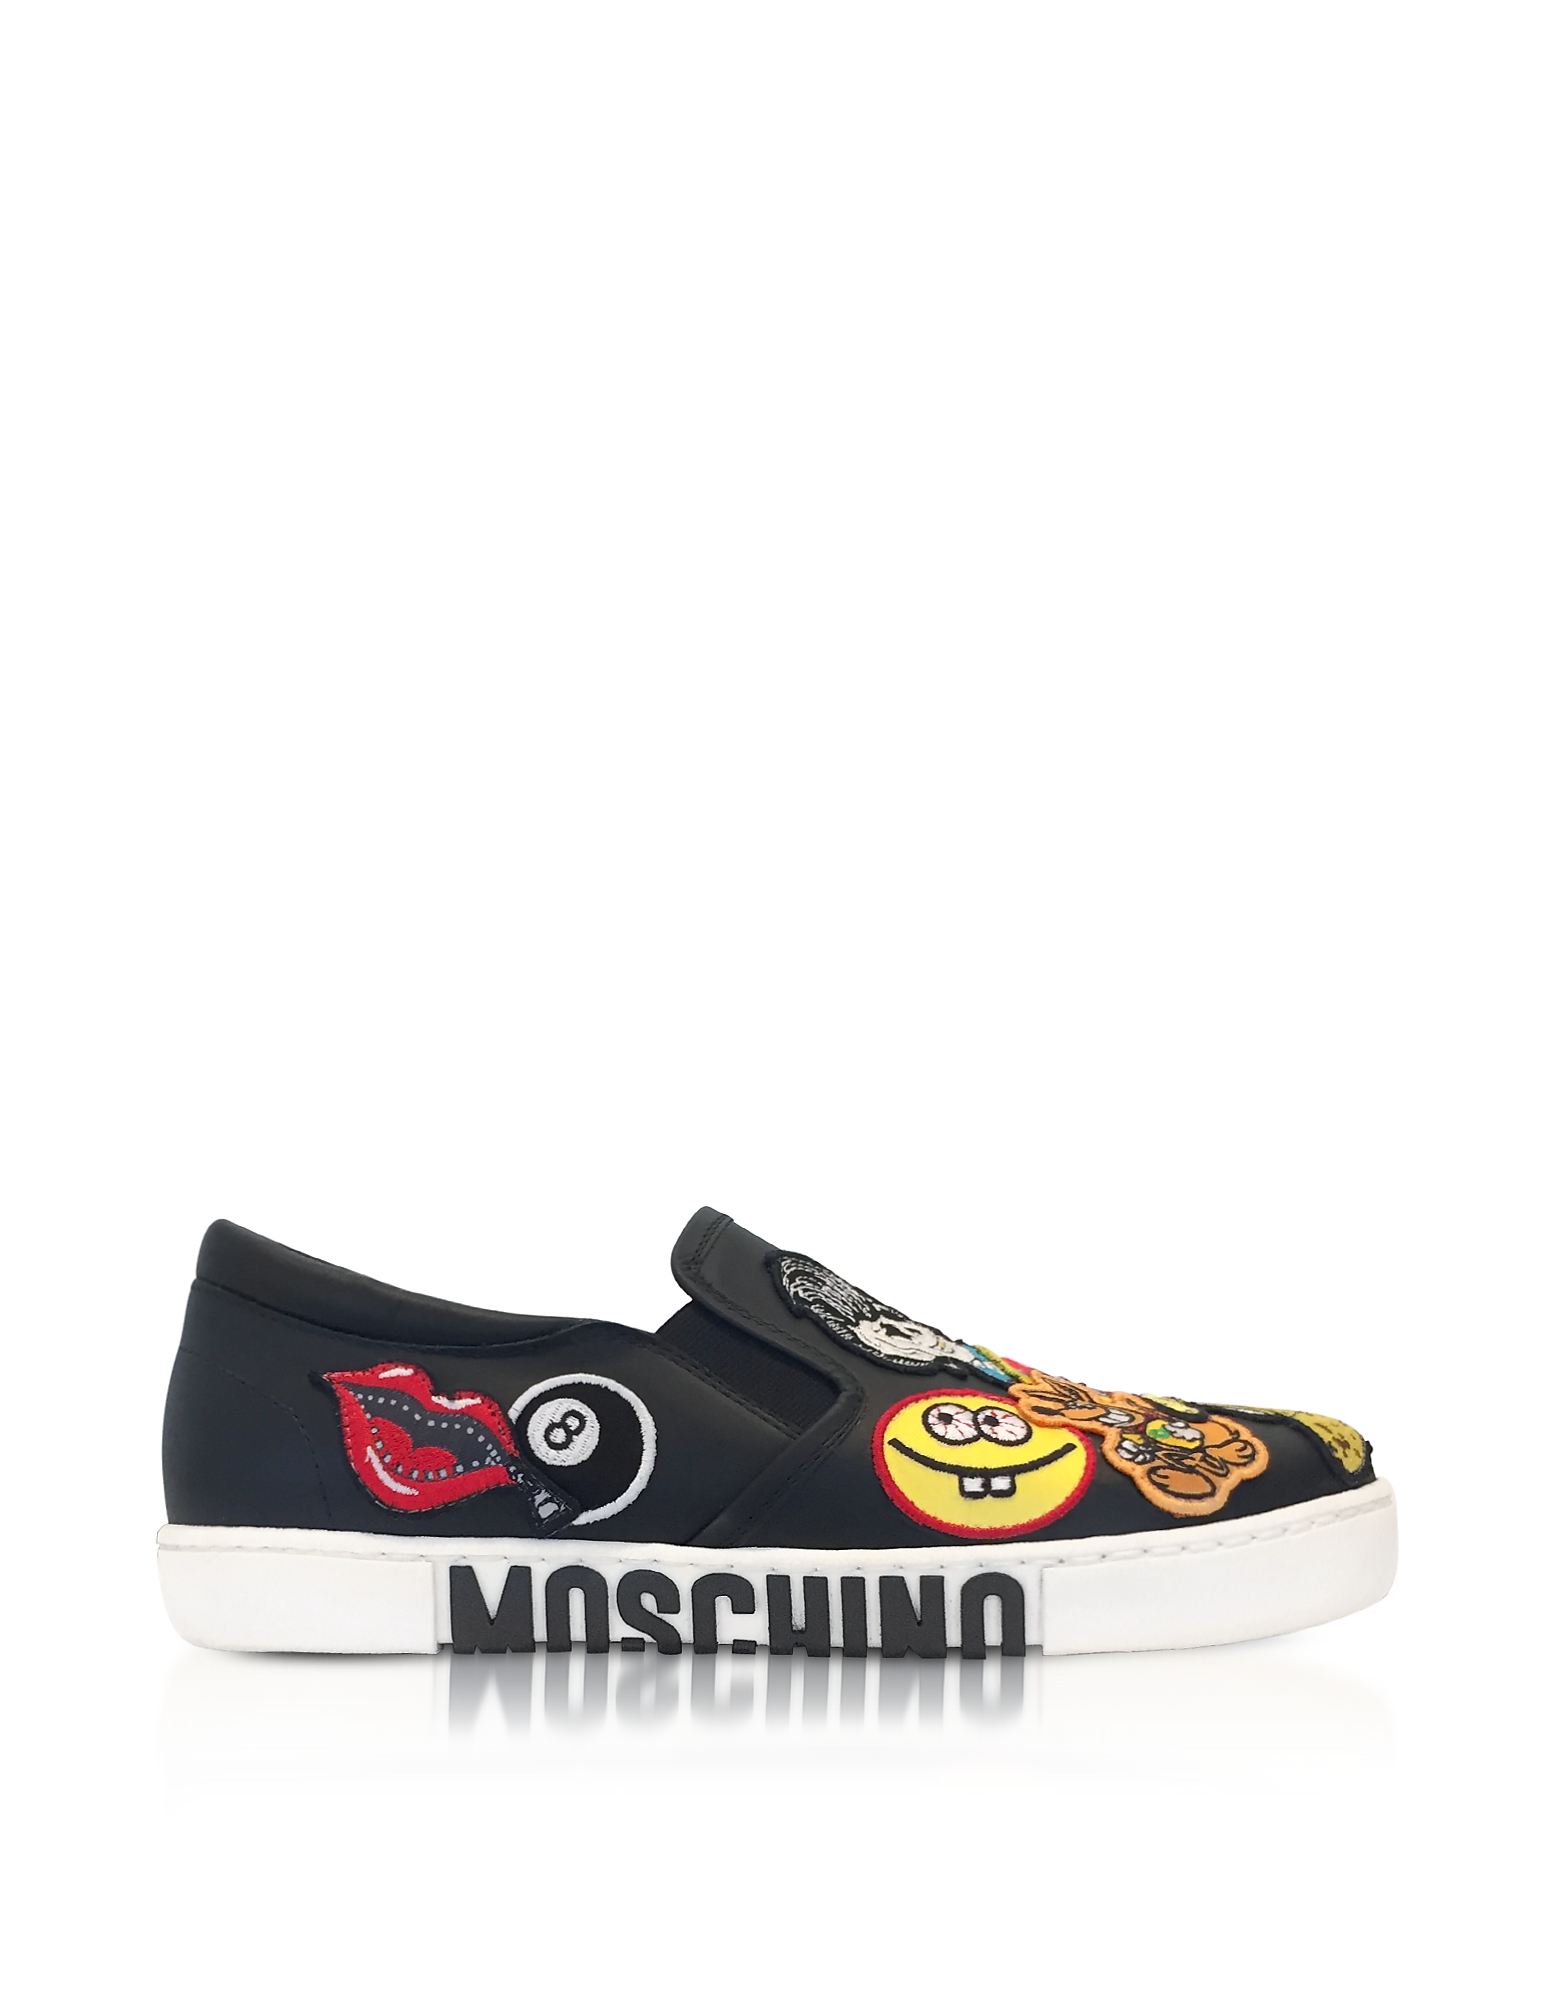 Moschino Shoes, Black Leather Slip On Sneakers w/Patches